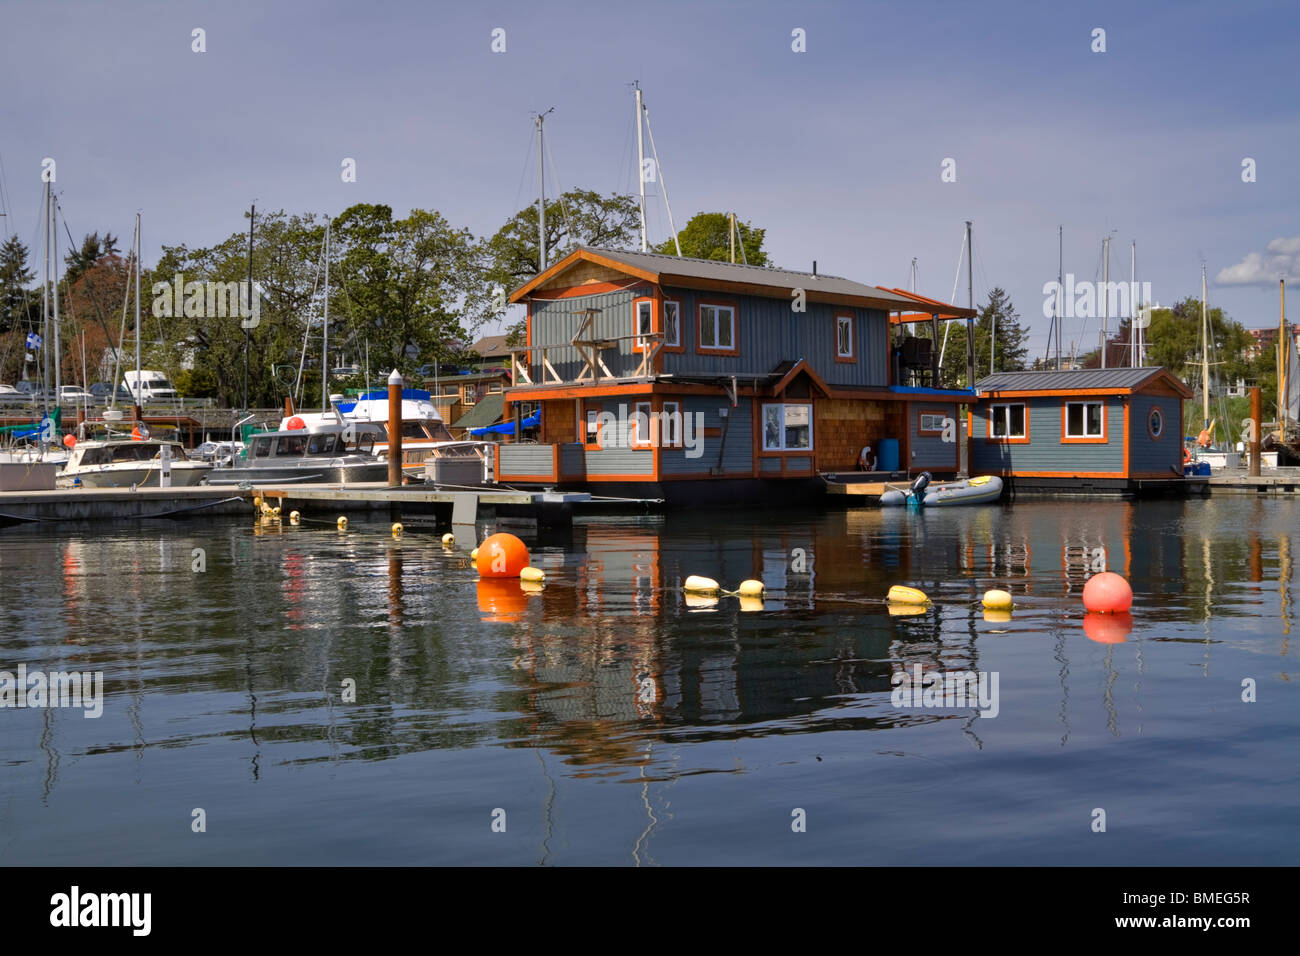 Floating homes and liveaboard yachts in Westbay Marine Village, Middle Harbour, Victoria, British Columbia. - Stock Image